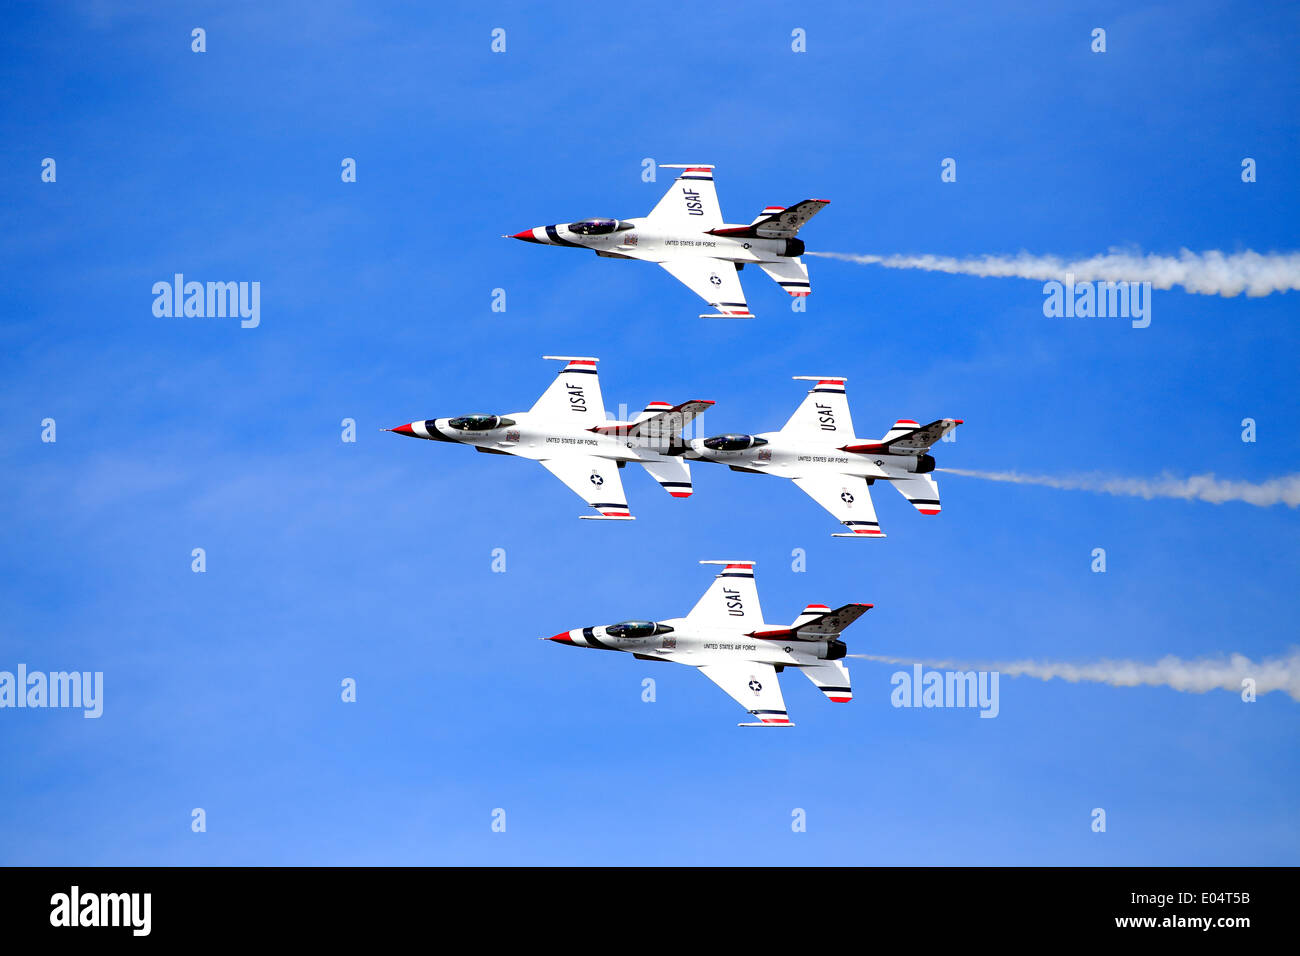 The USAF Air Demonstration Squadron ('Thunderbirds') is the air demonstration squadron of the United States Air Force (USAF) - Stock Image